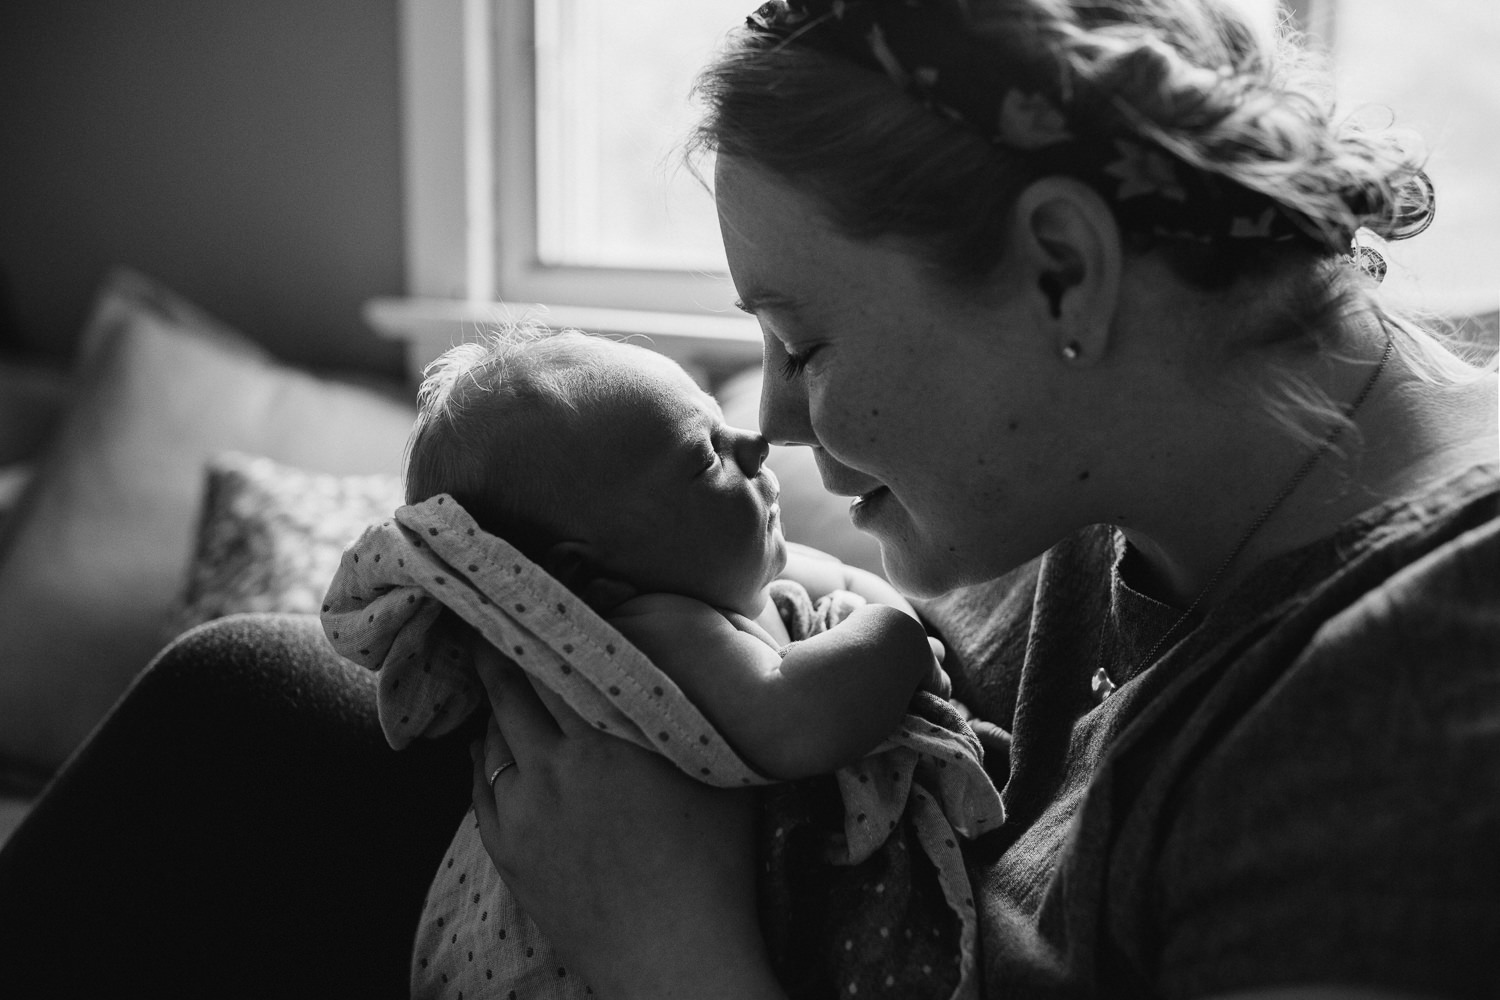 mom sits on couch with 10 day old baby boy, nose-to-nose - Barrie In-Home Family Photos